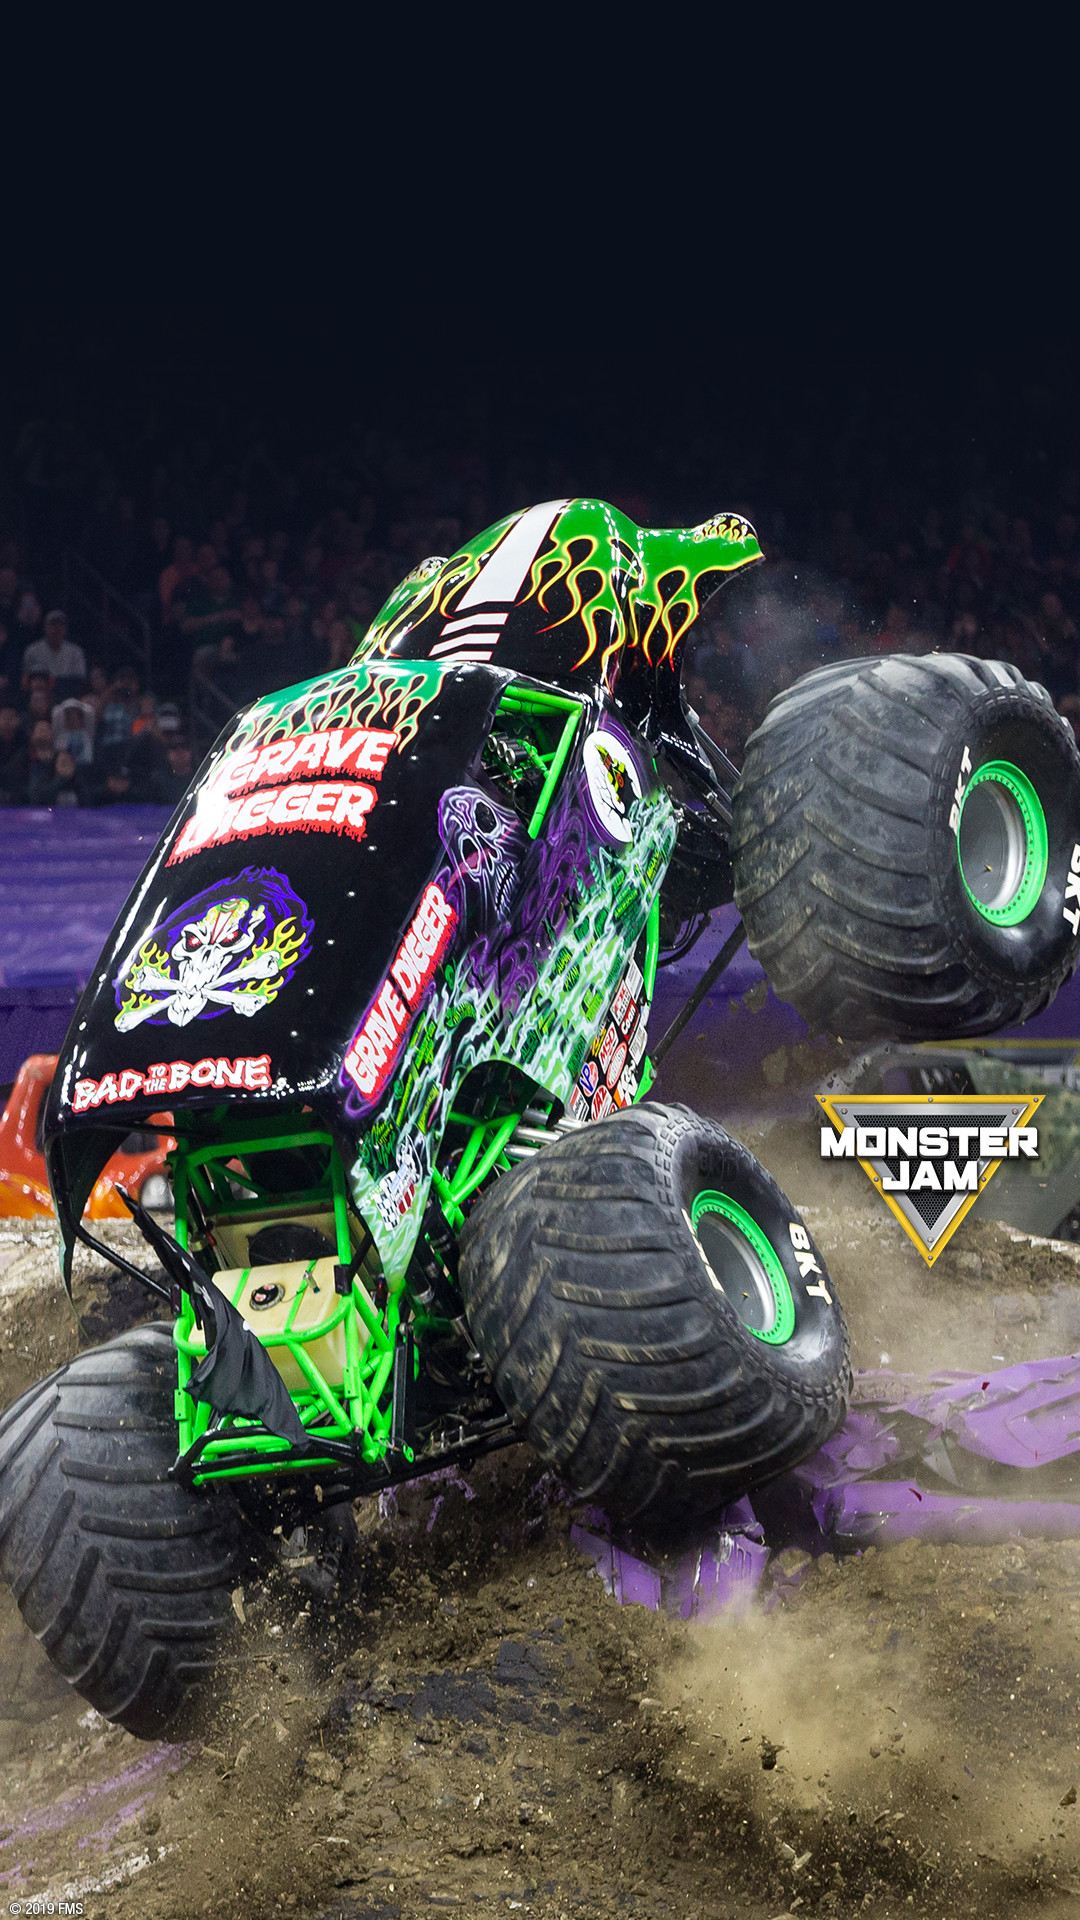 Monster Truck Wallpaper 52 Images